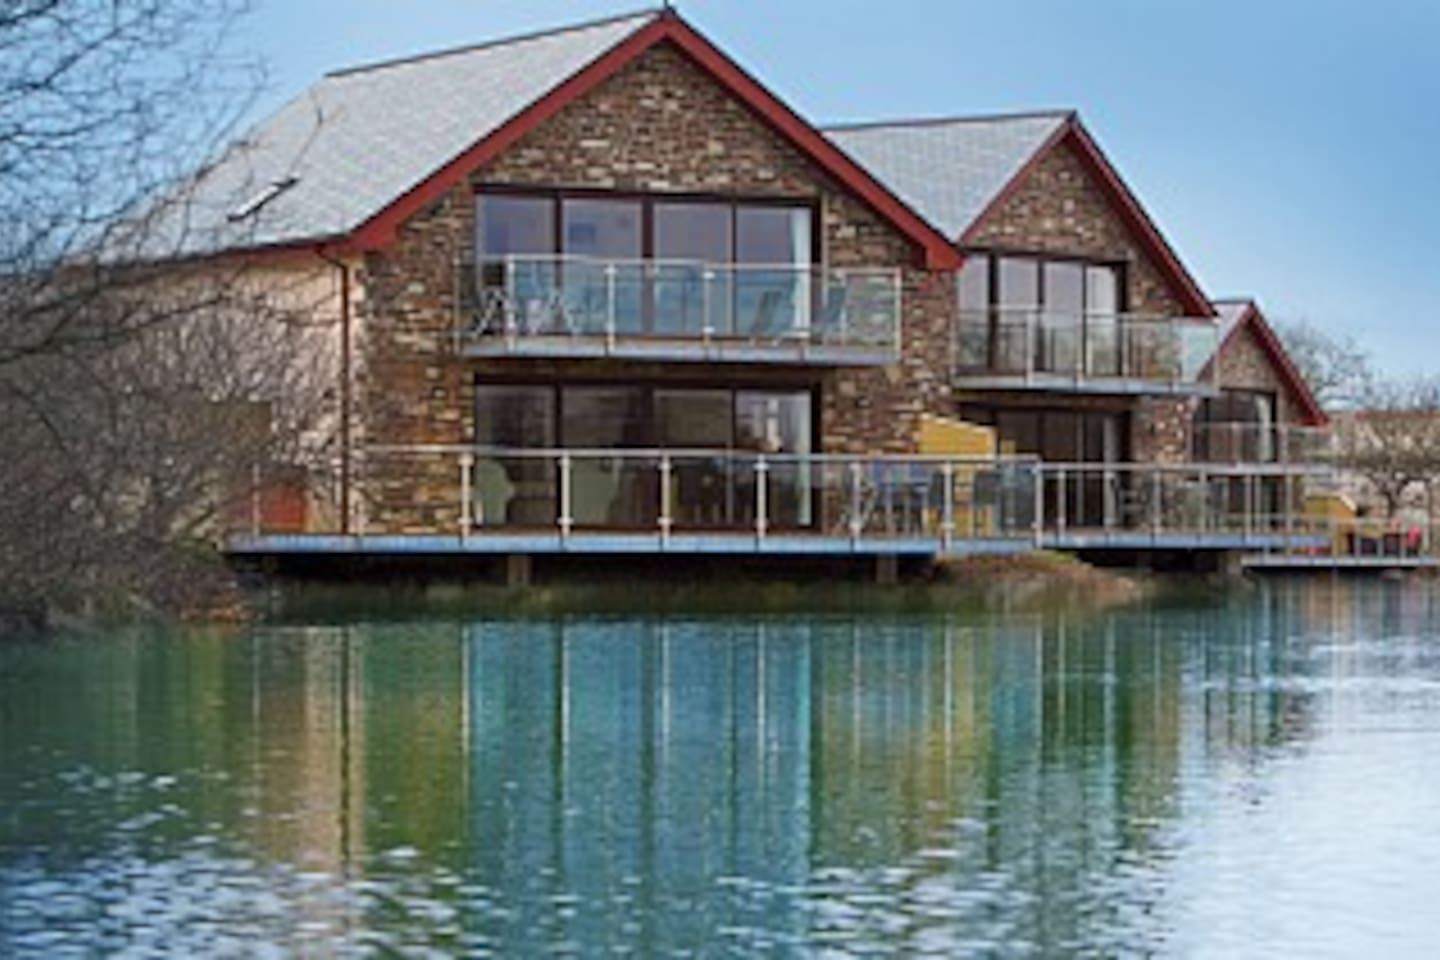 Fistral Lodge 102 - Rear view with private veranda overlooking the lake